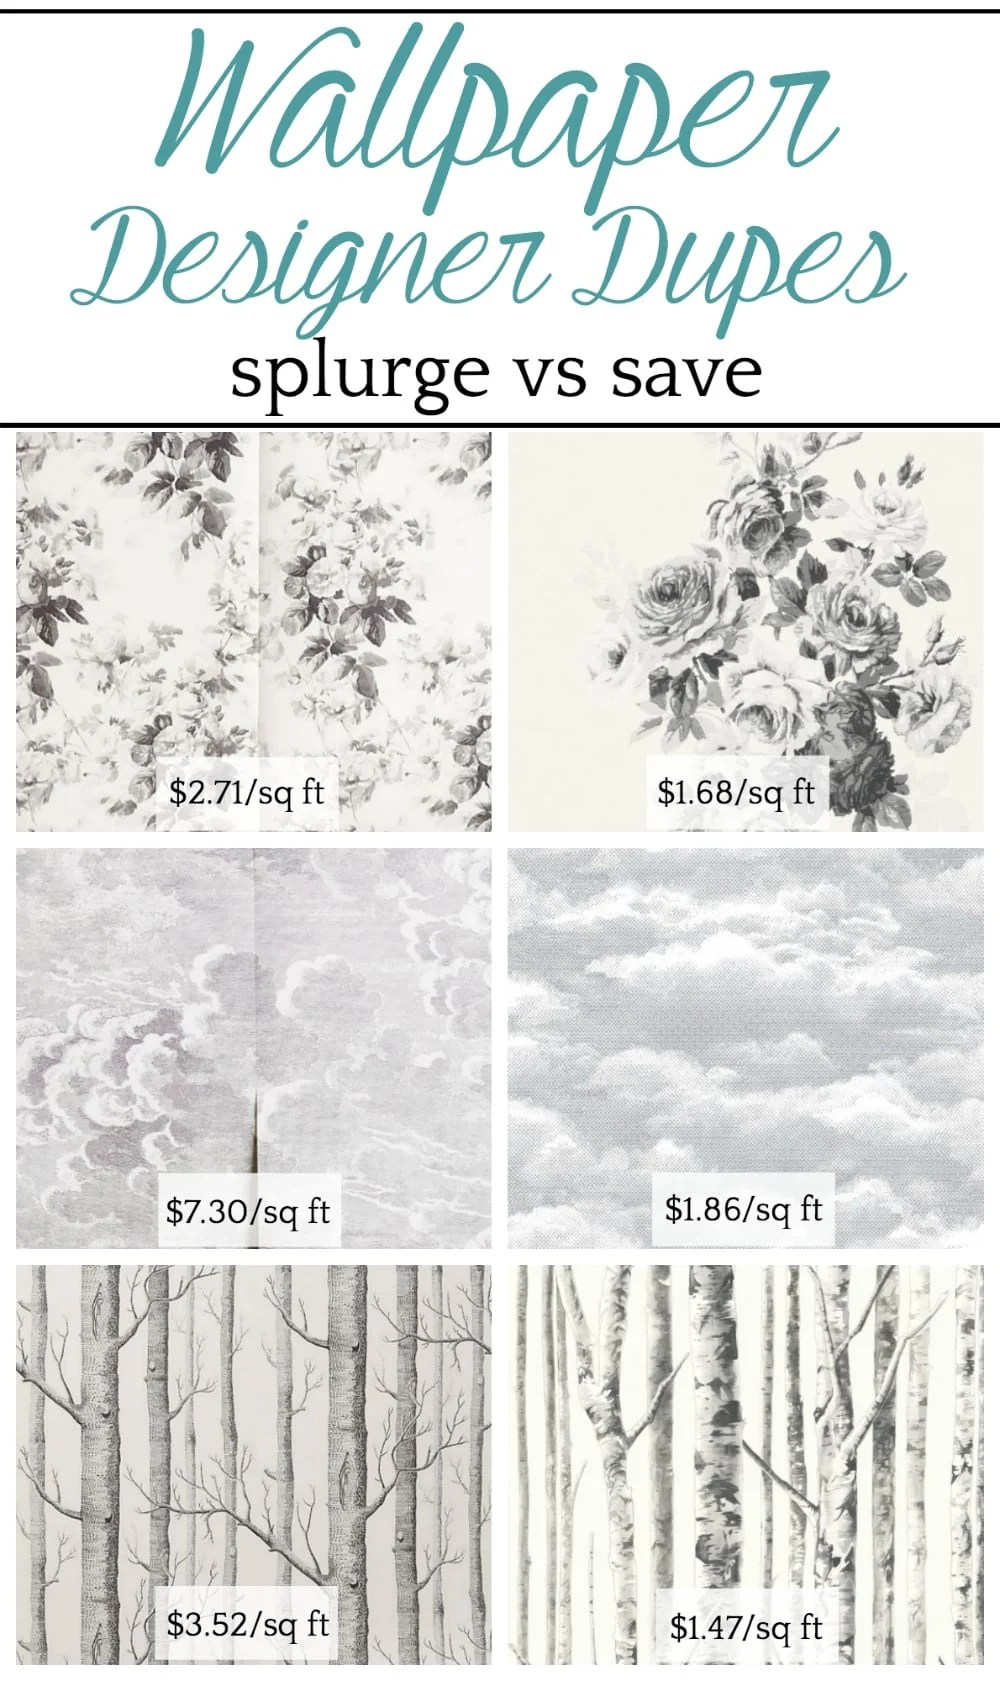 Wallpaper Designer Dupes: Splurge vs. Save | A round-up shopping guide with 14 of the most popular designer wallpapers and their cheaper dupes to get the look for less.